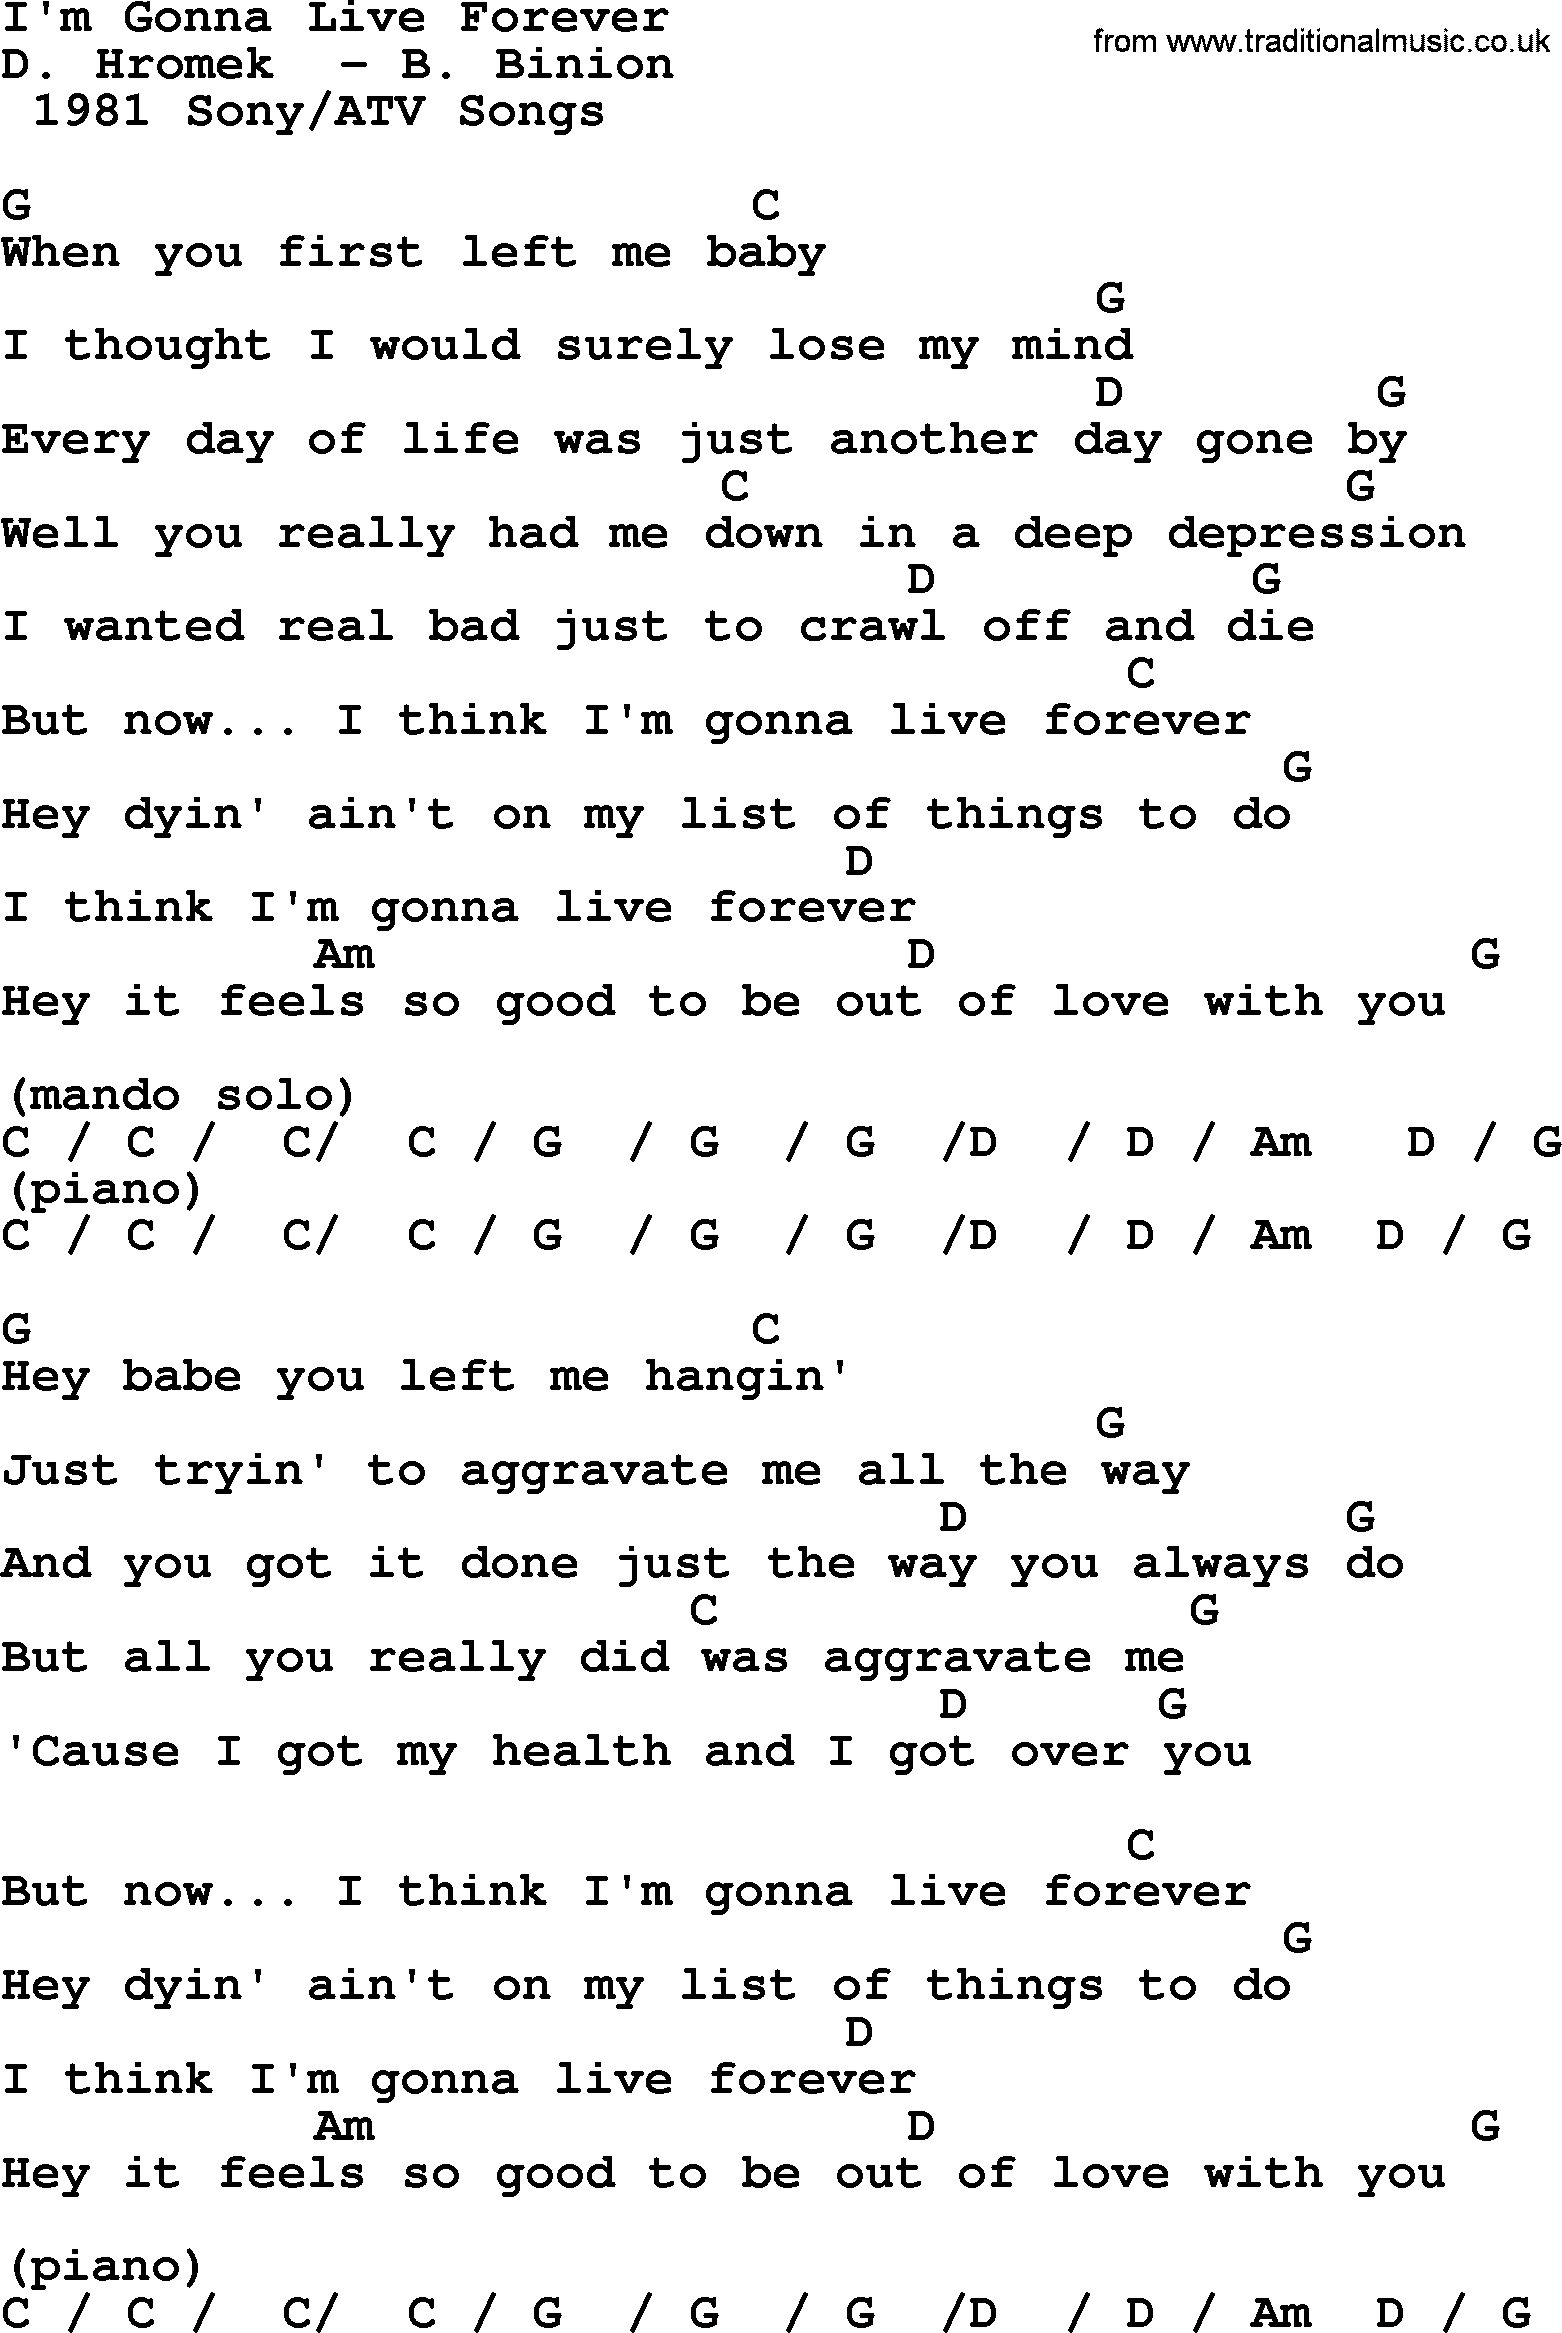 Im Gonna Live Forever By Merle Haggard Lyrics And Chords